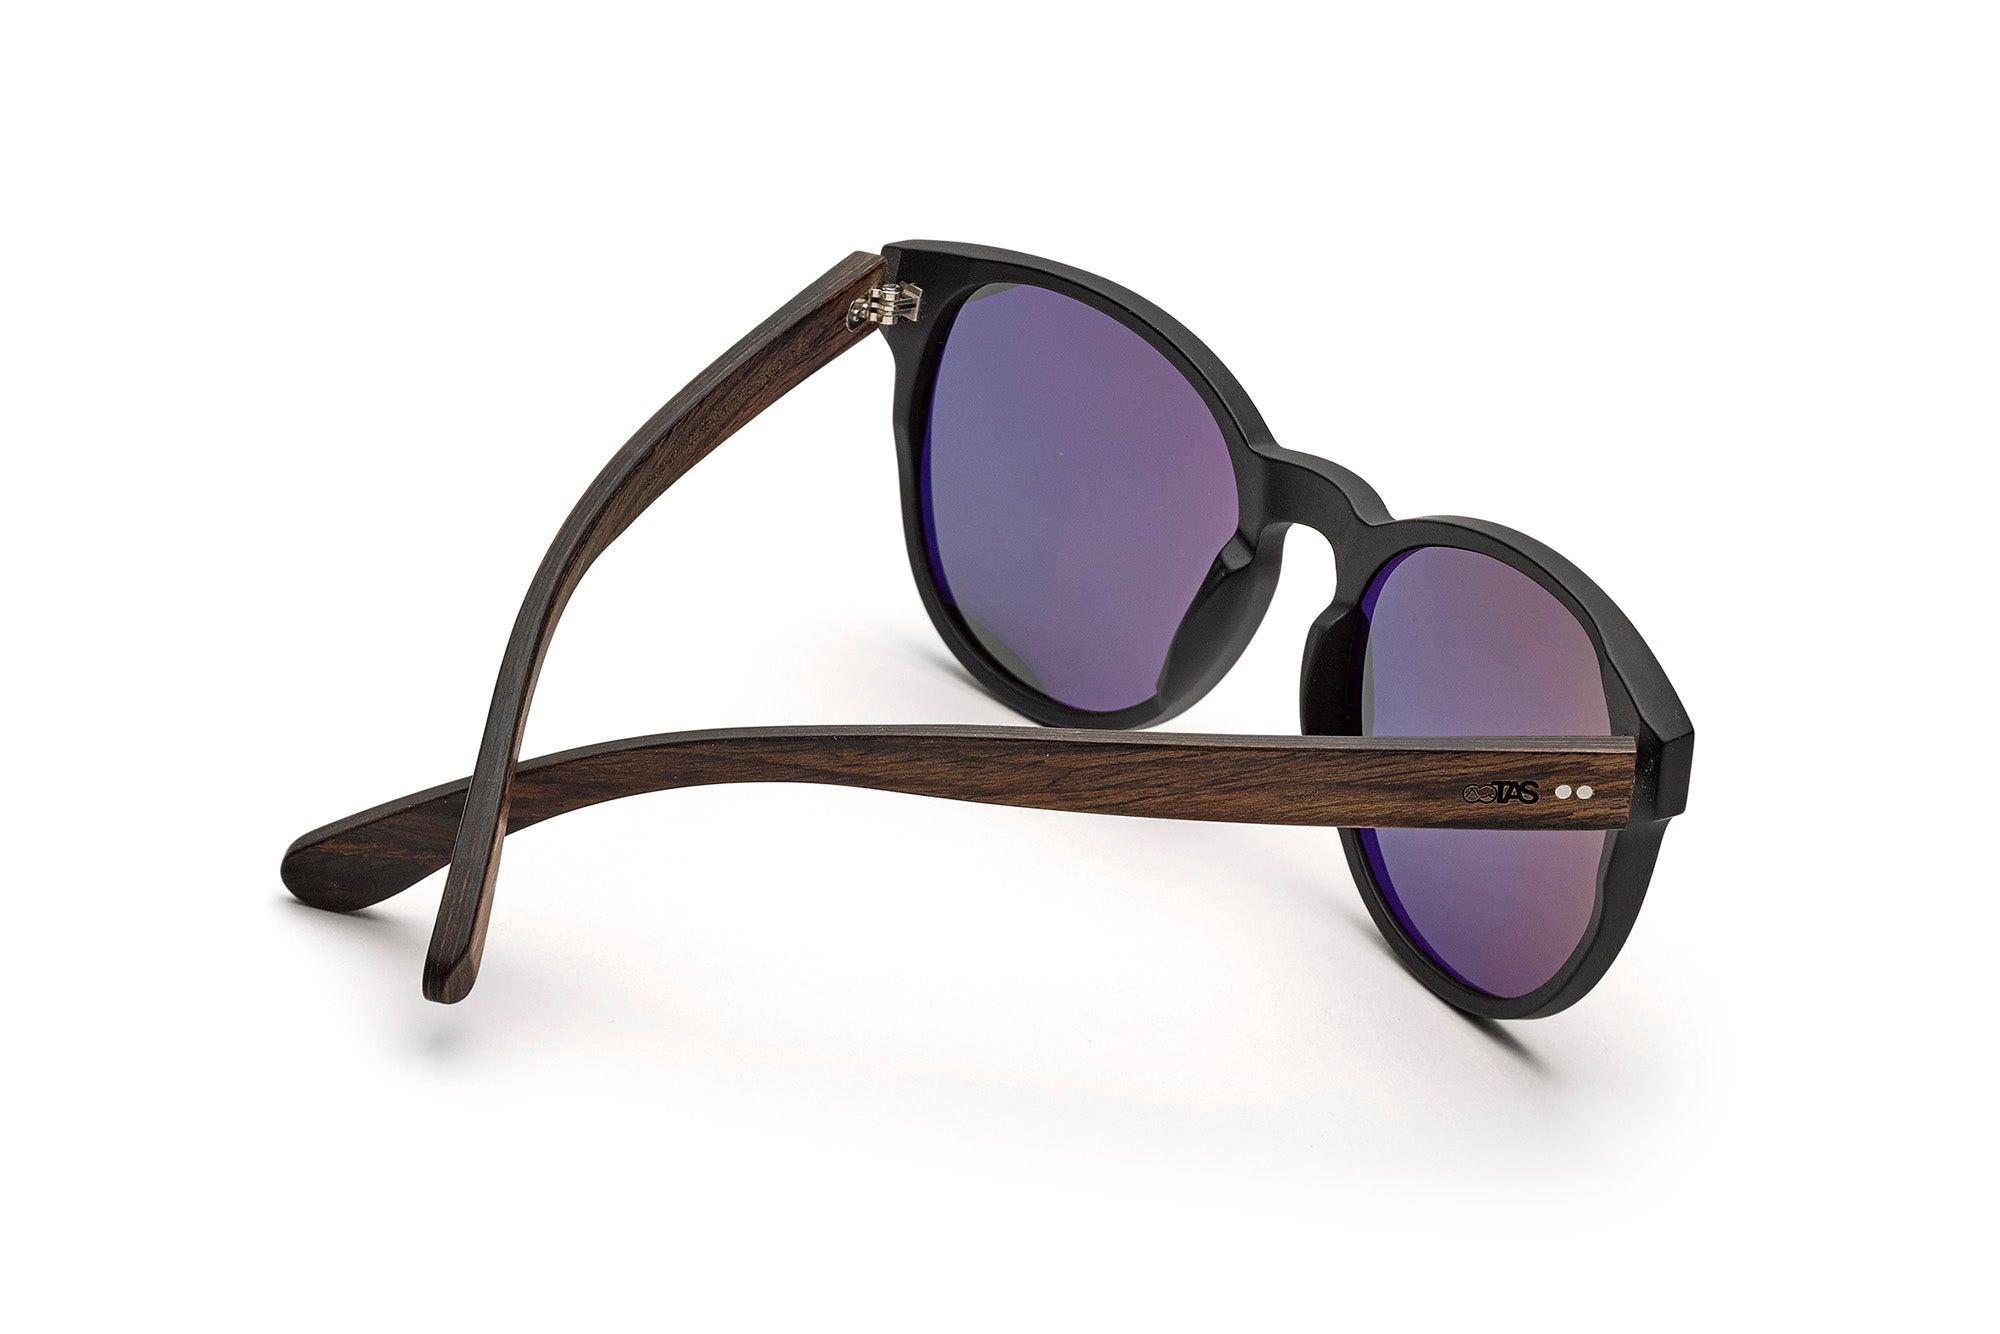 Holz-Sonnenbrille The King Of Hearts Unisex